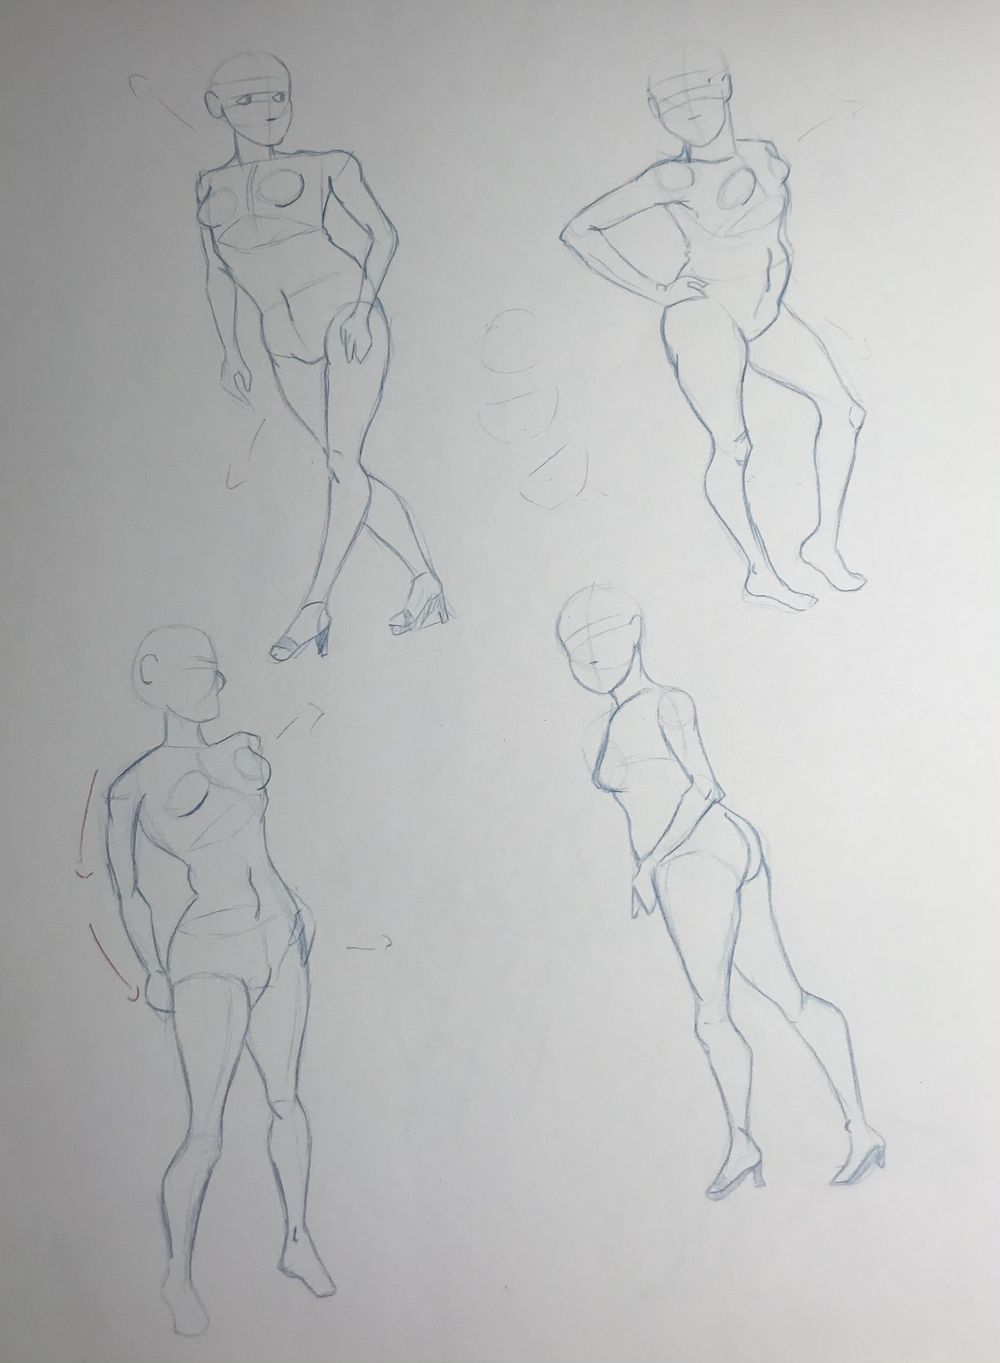 Gesture Drawing Practice (3) - image 4 - student project